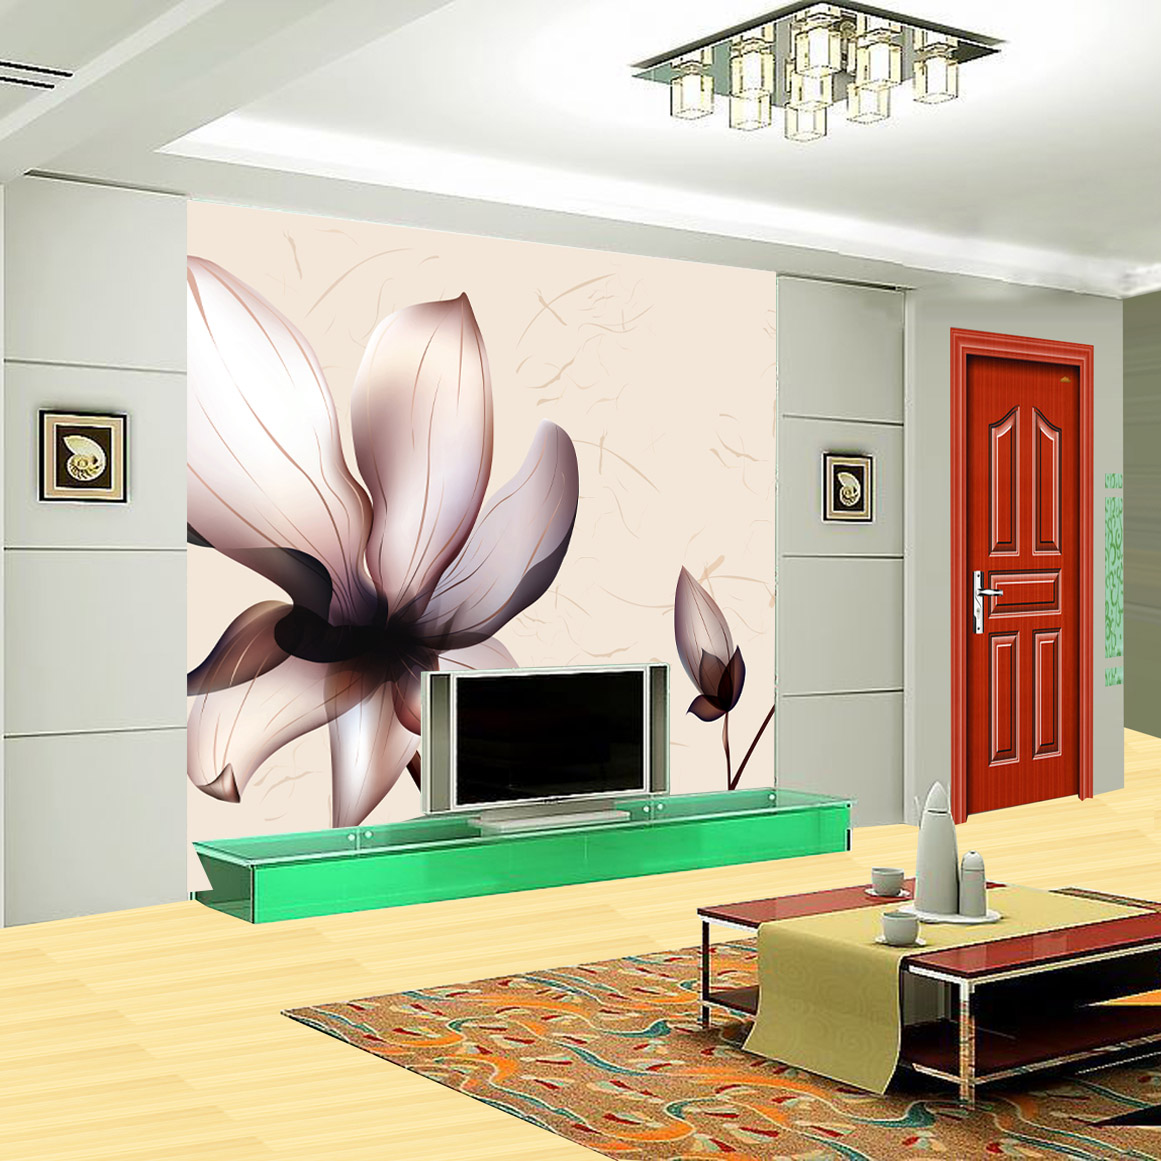 Custom 3D stereoscopic large mural wallpaper fabric wall paper abstract world of the living room bedroom nonwoven lines lotus 3d stereoscopic large mural custom wallpaper living room tv backdrop wall paper bedroom wall painting cartoon film kung fu panda